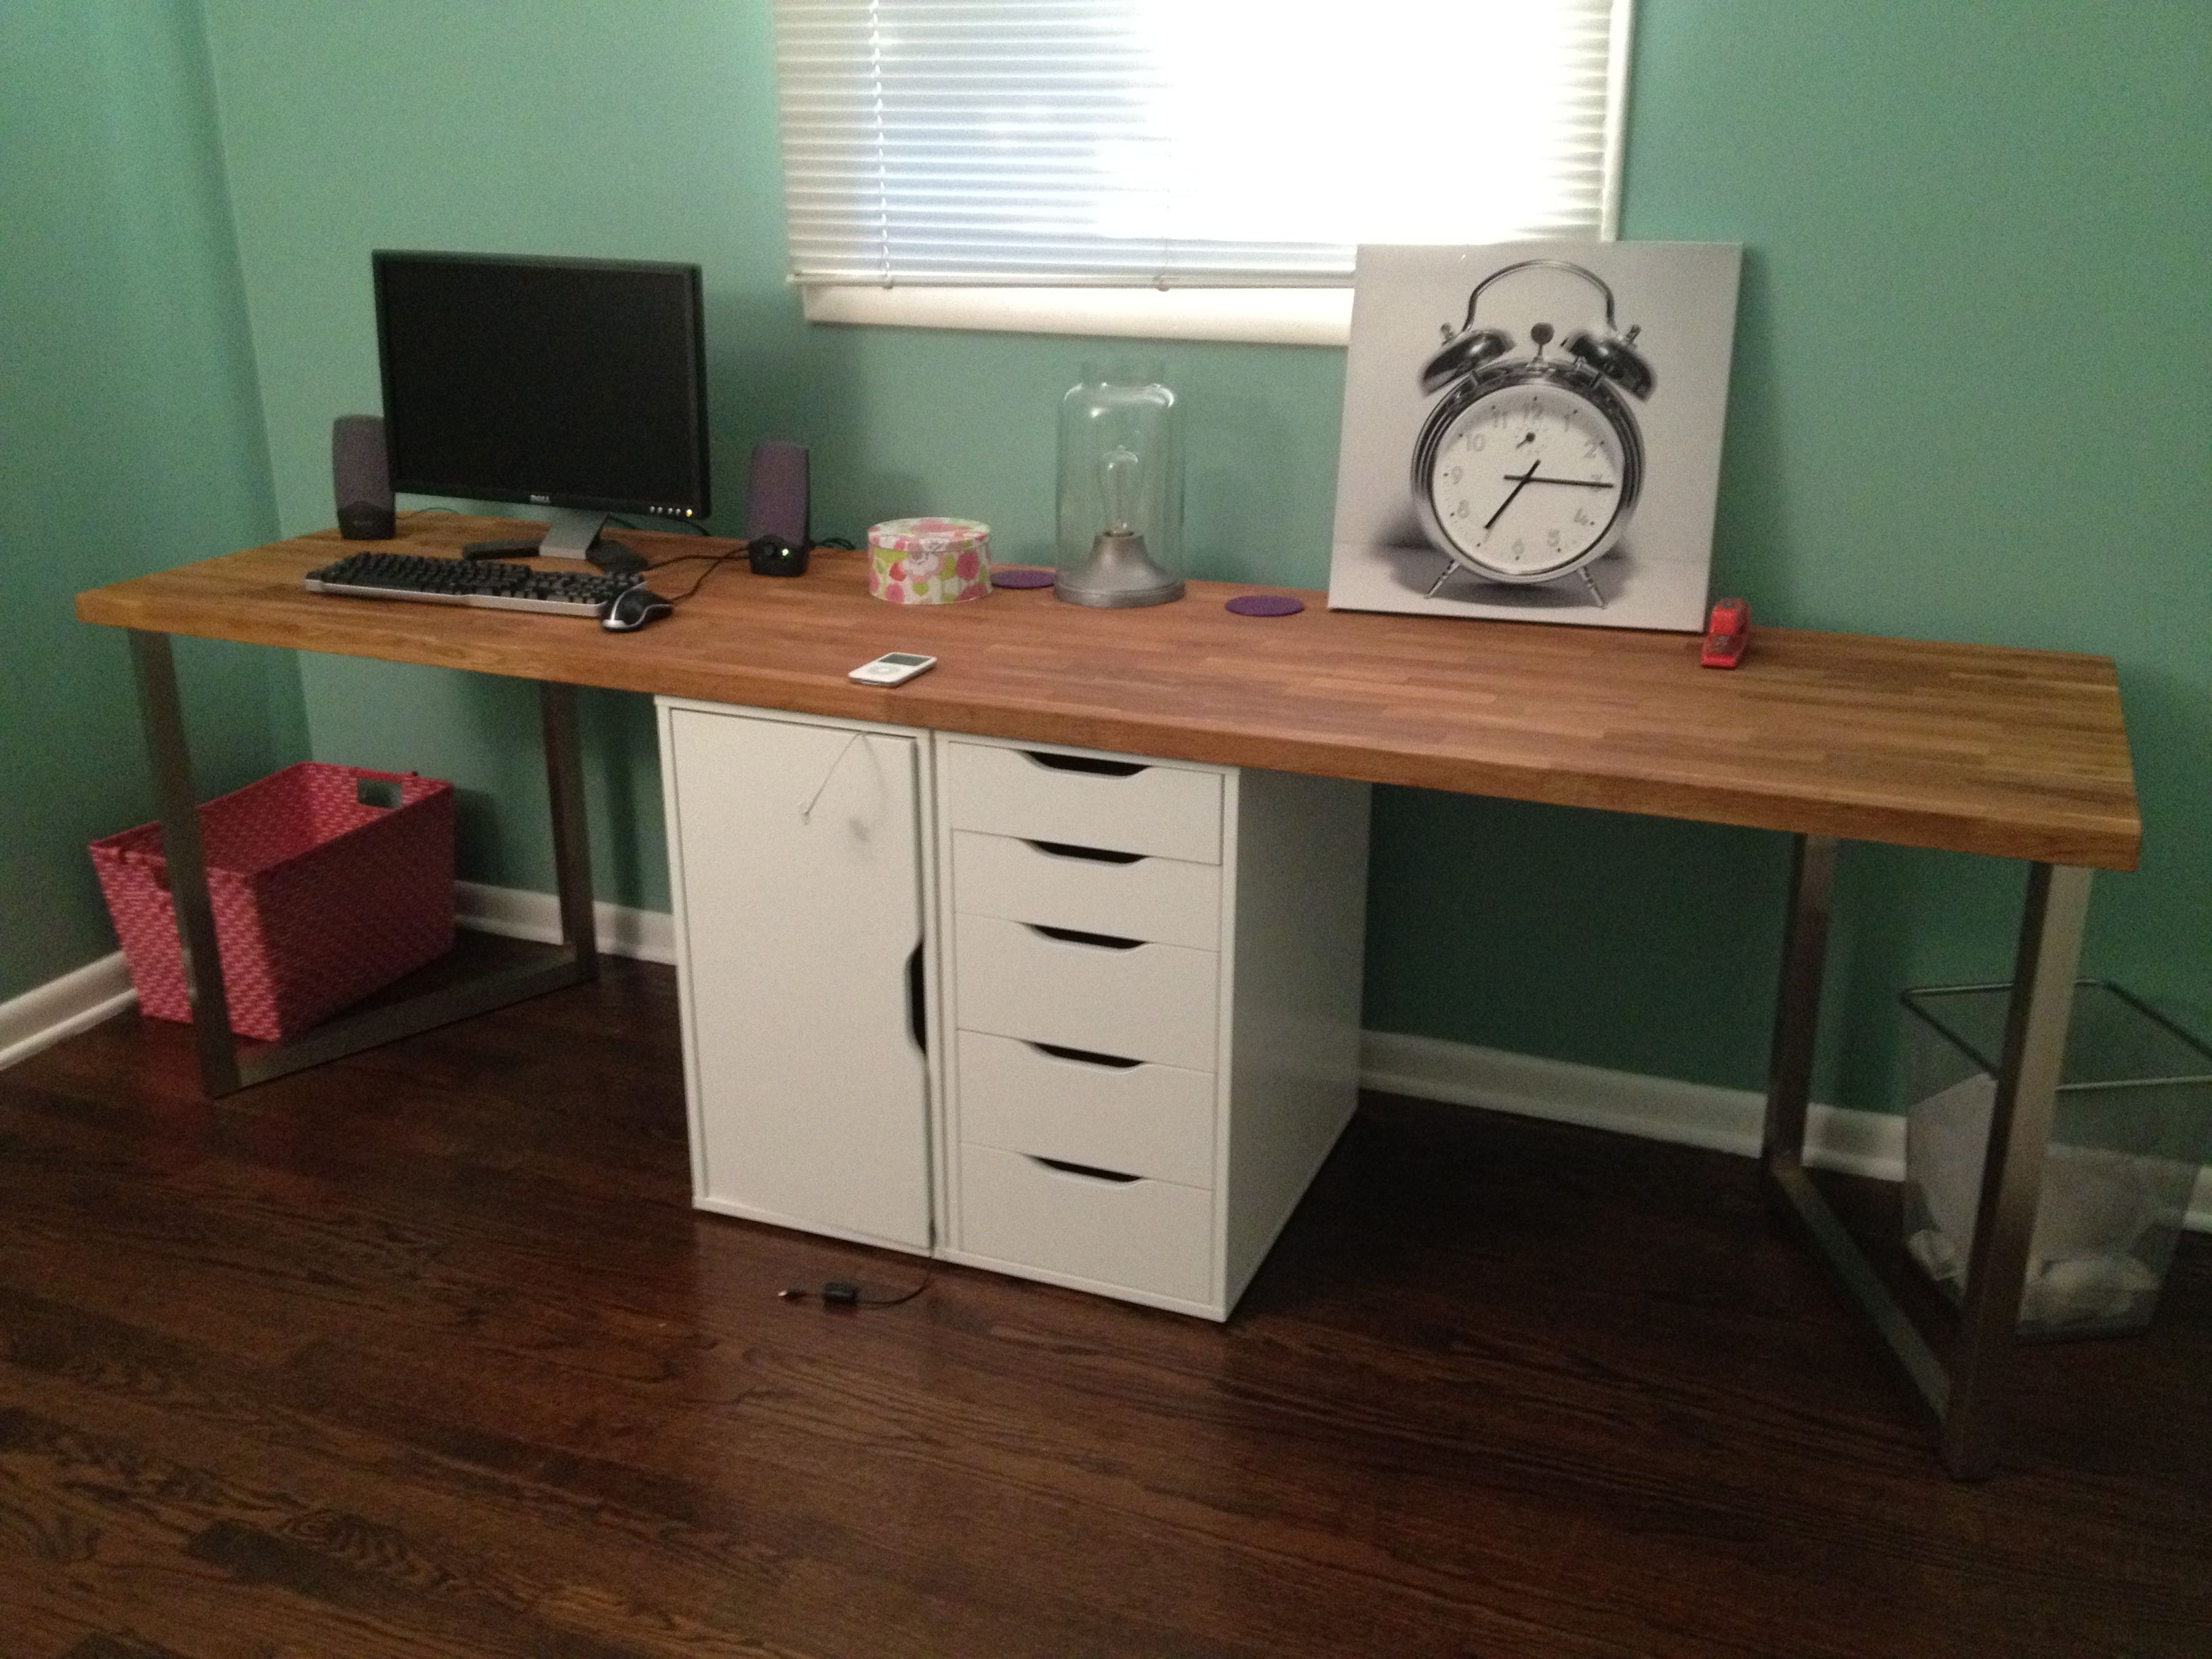 office makeover part one diy desk (ikea hack)  design elements  - office makeover part one diy desk (ikea hack)